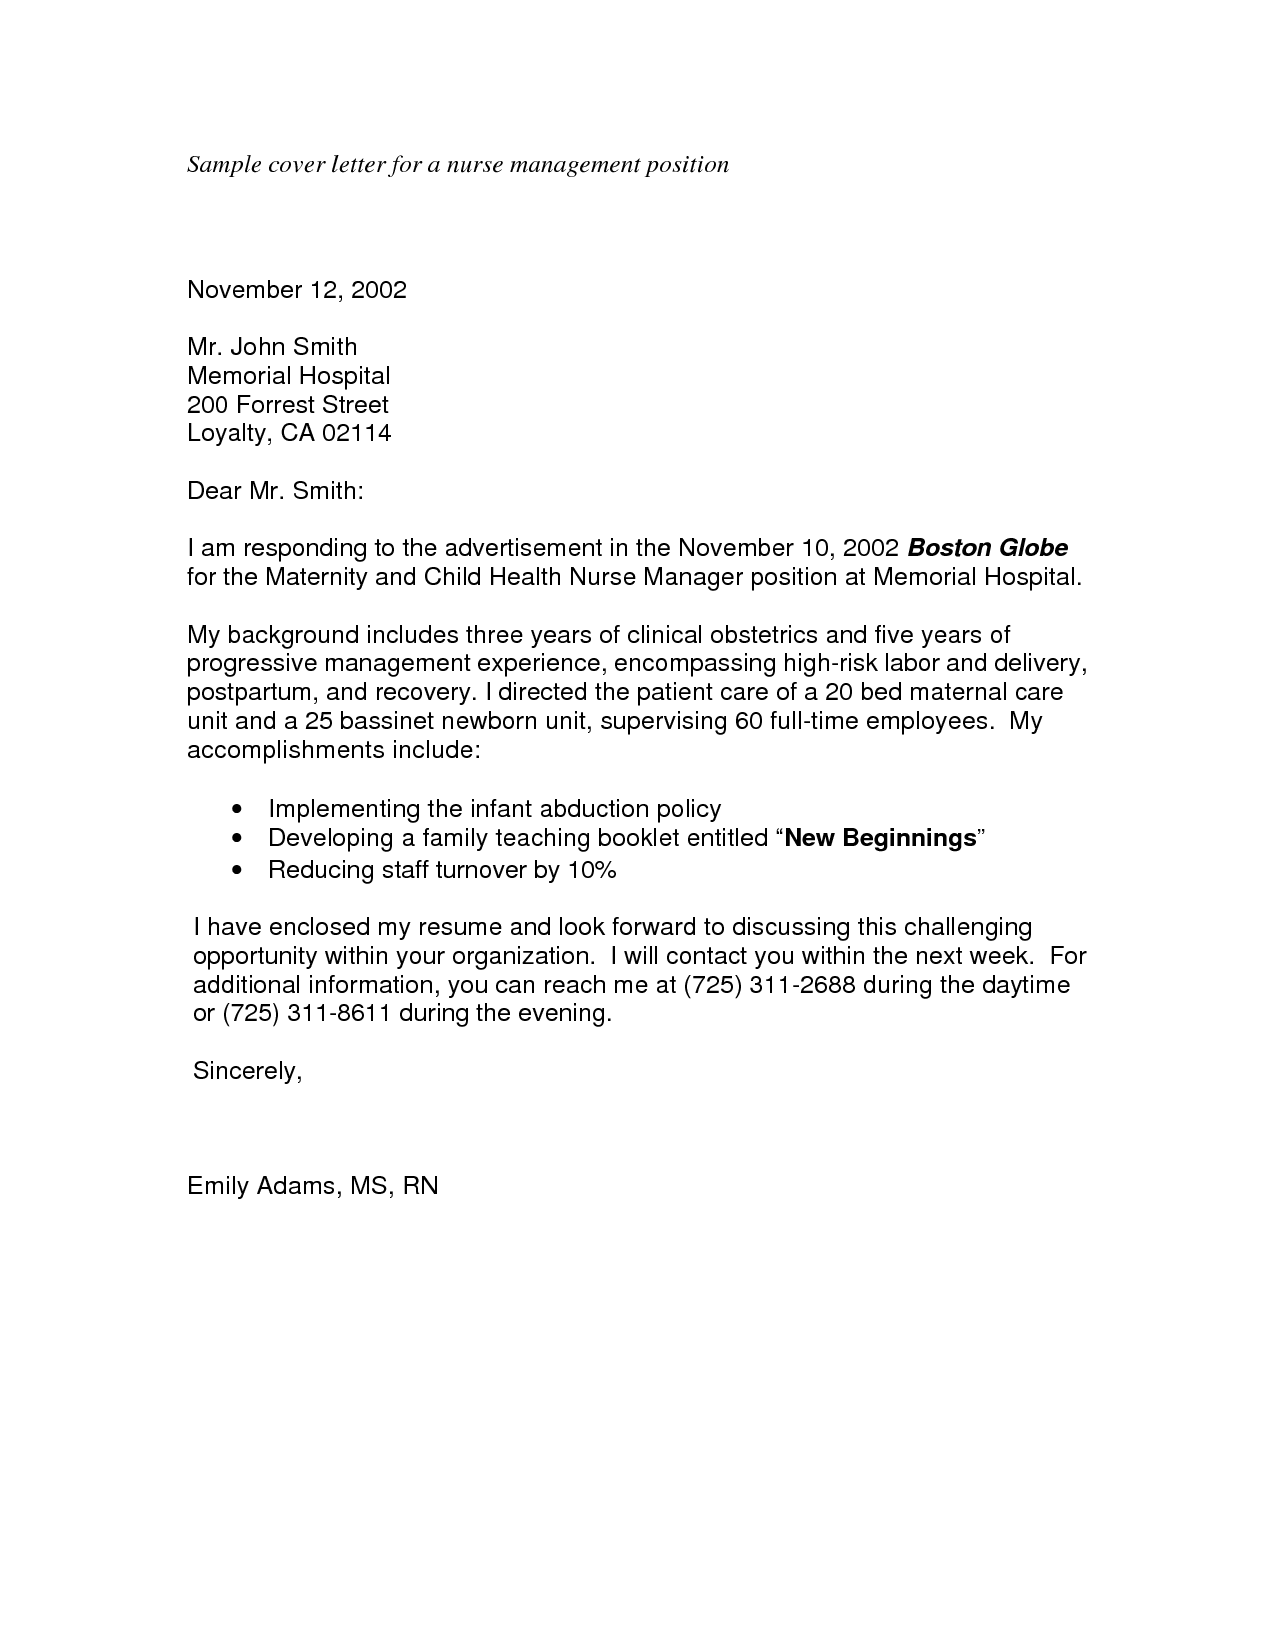 Sample Of Cover Letter Unique Sample Nursing Application Cover Letters  Sample Cover Letter For Design Decoration